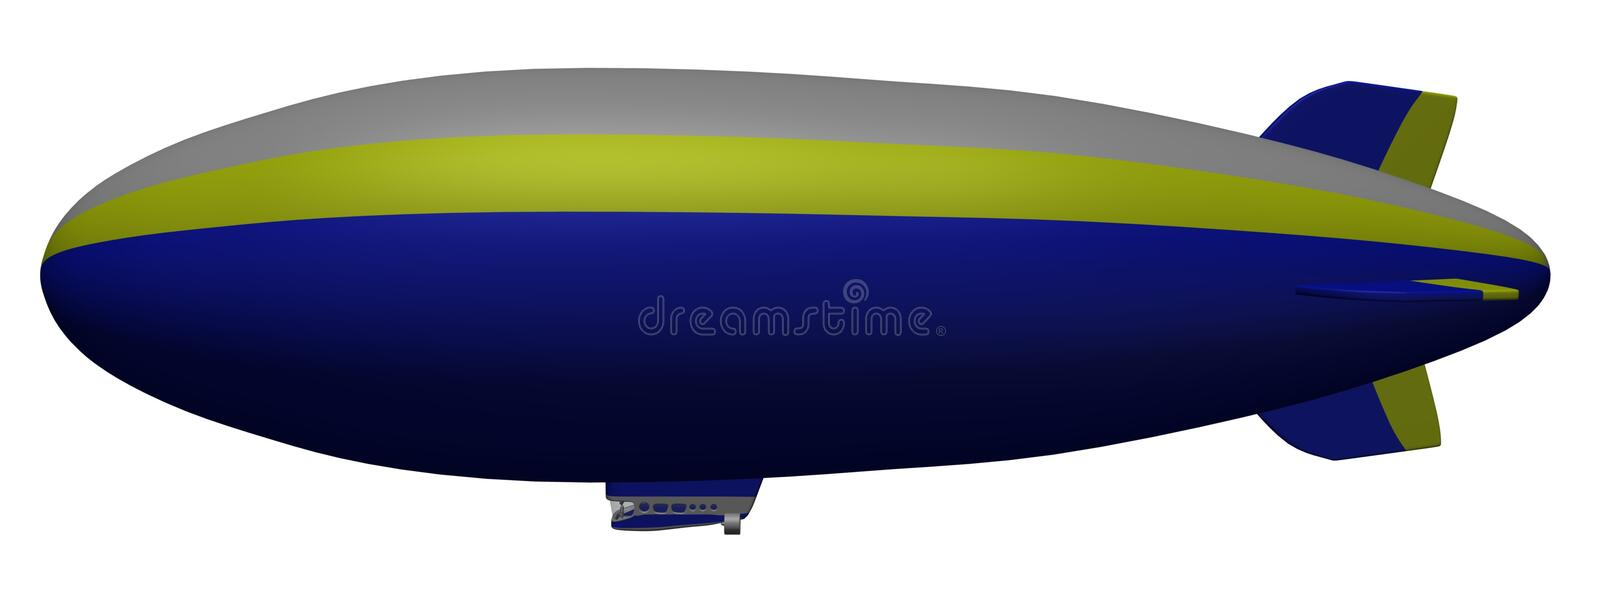 Blimp Royalty Free Stock Images